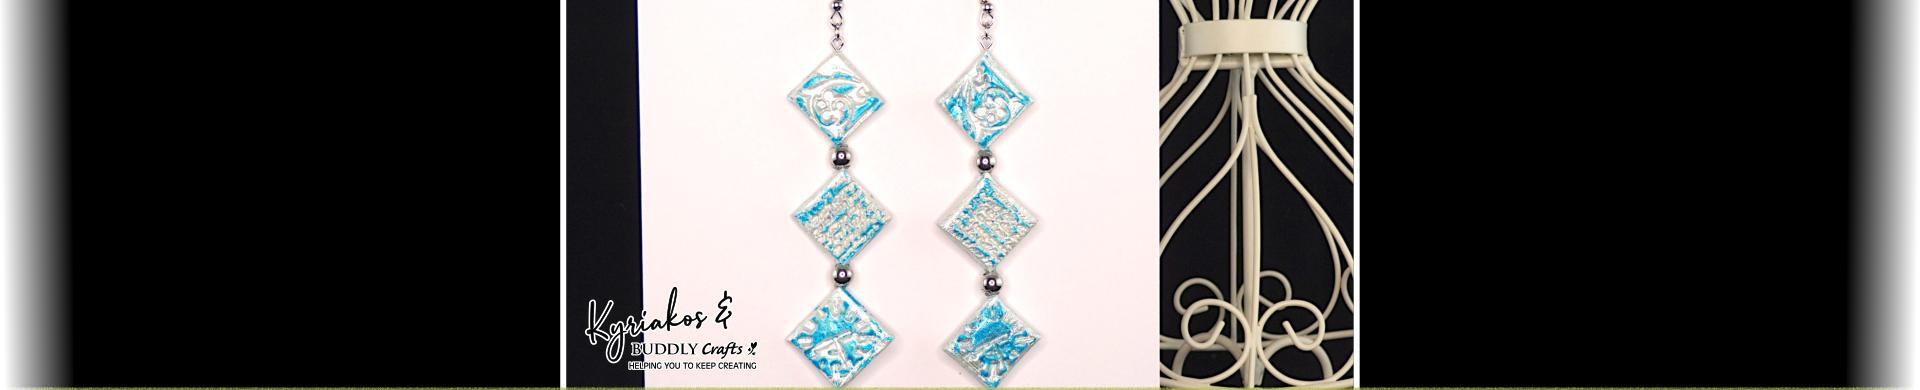 Arty Mosaic Rubber Stamped Clay Earrings